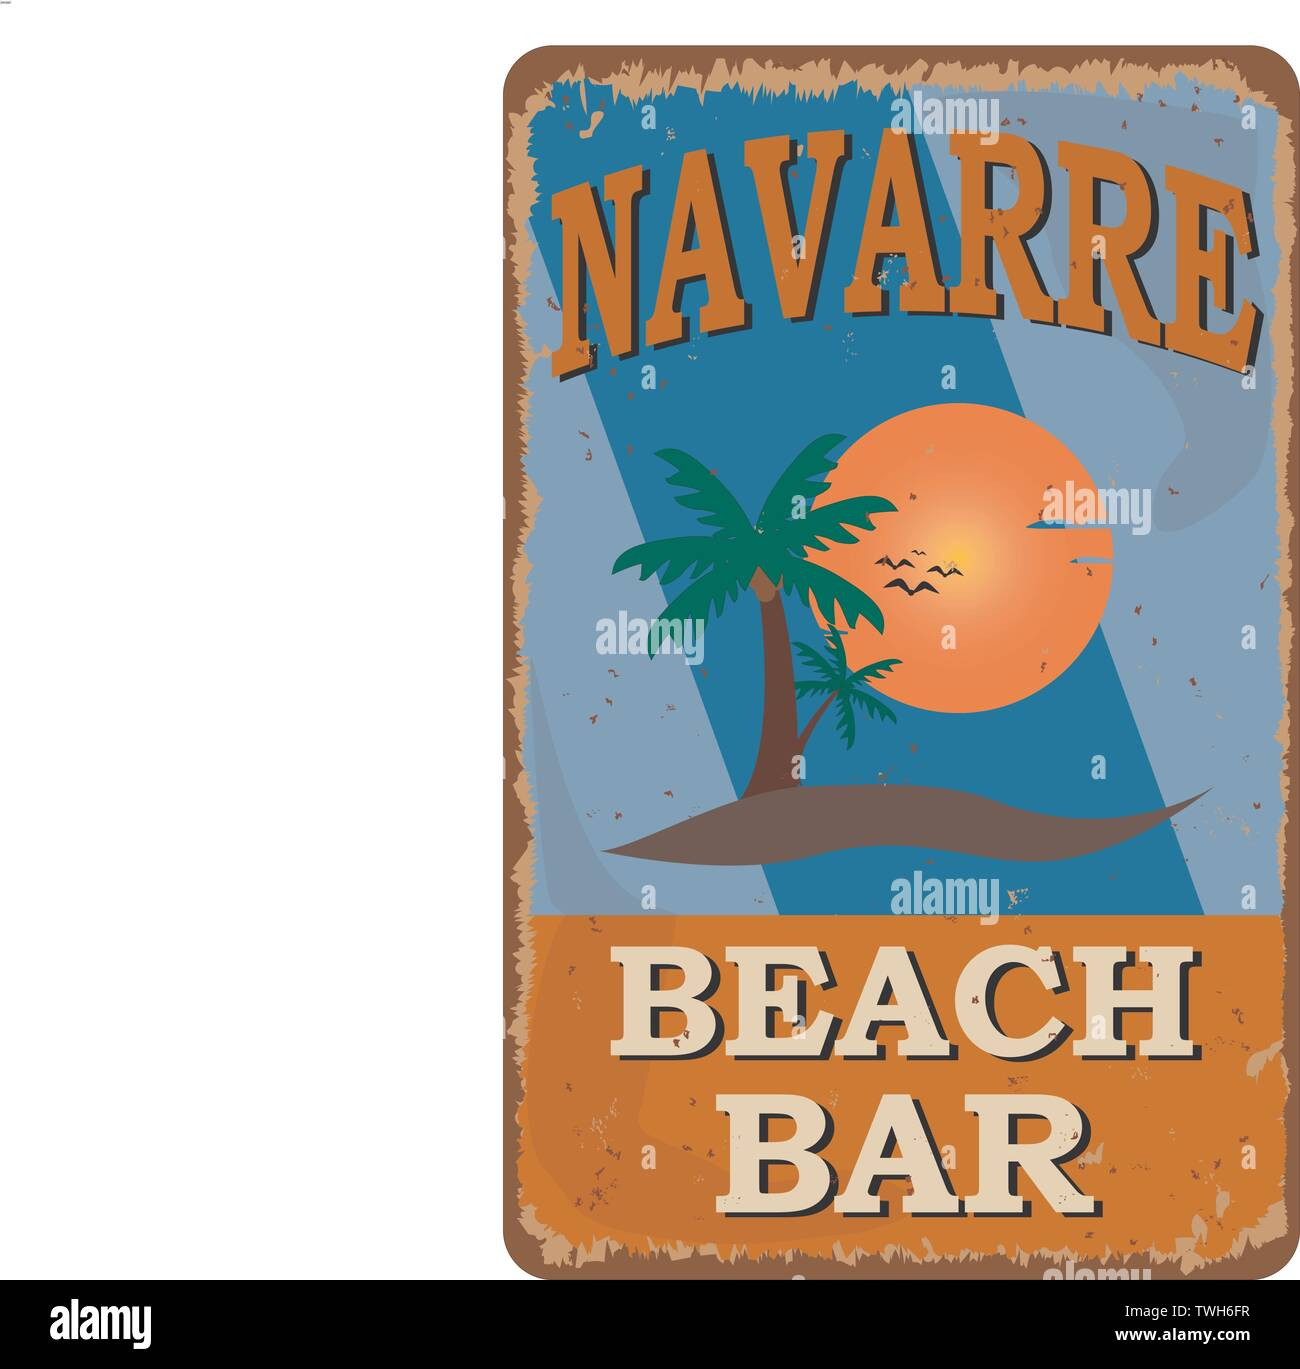 Navarre Beach bar vintage rusty metal sign on a white background, vector illustration - Stock Image